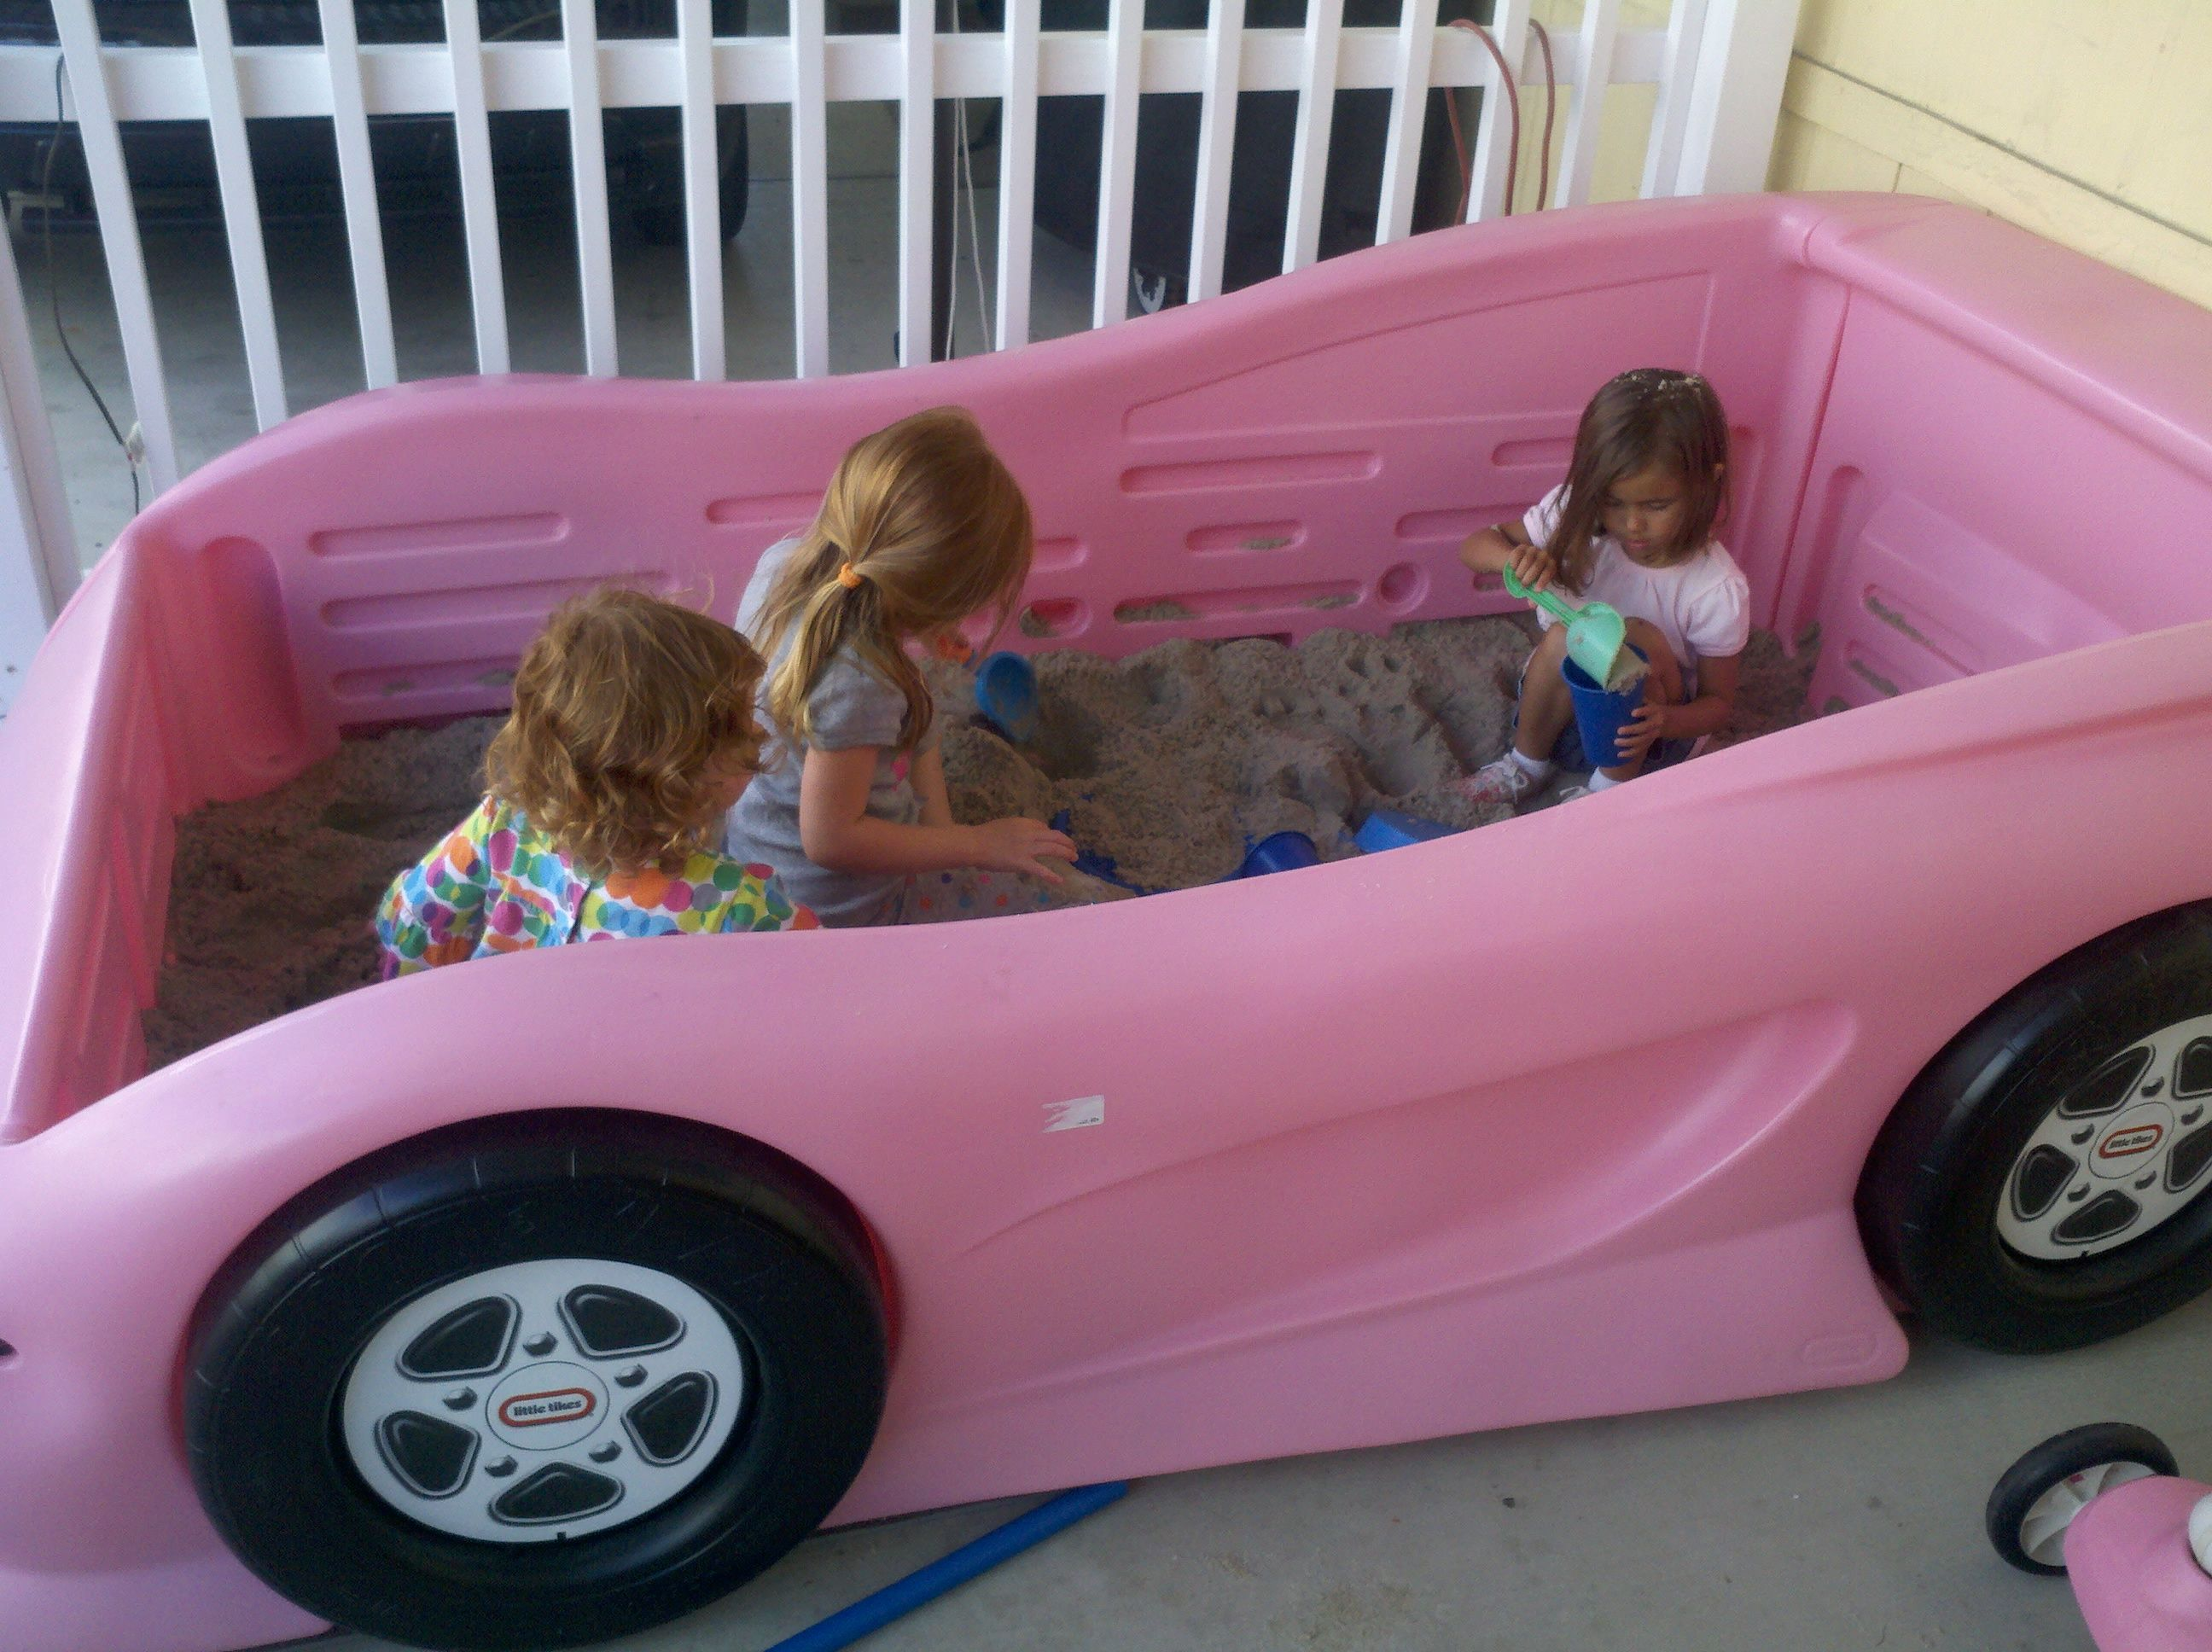 Baby jeep bed - 25 Best Ideas About Car Beds For Toddlers On Pinterest Car Beds For Kids Truck Bedroom And Race Car Toddler Bed